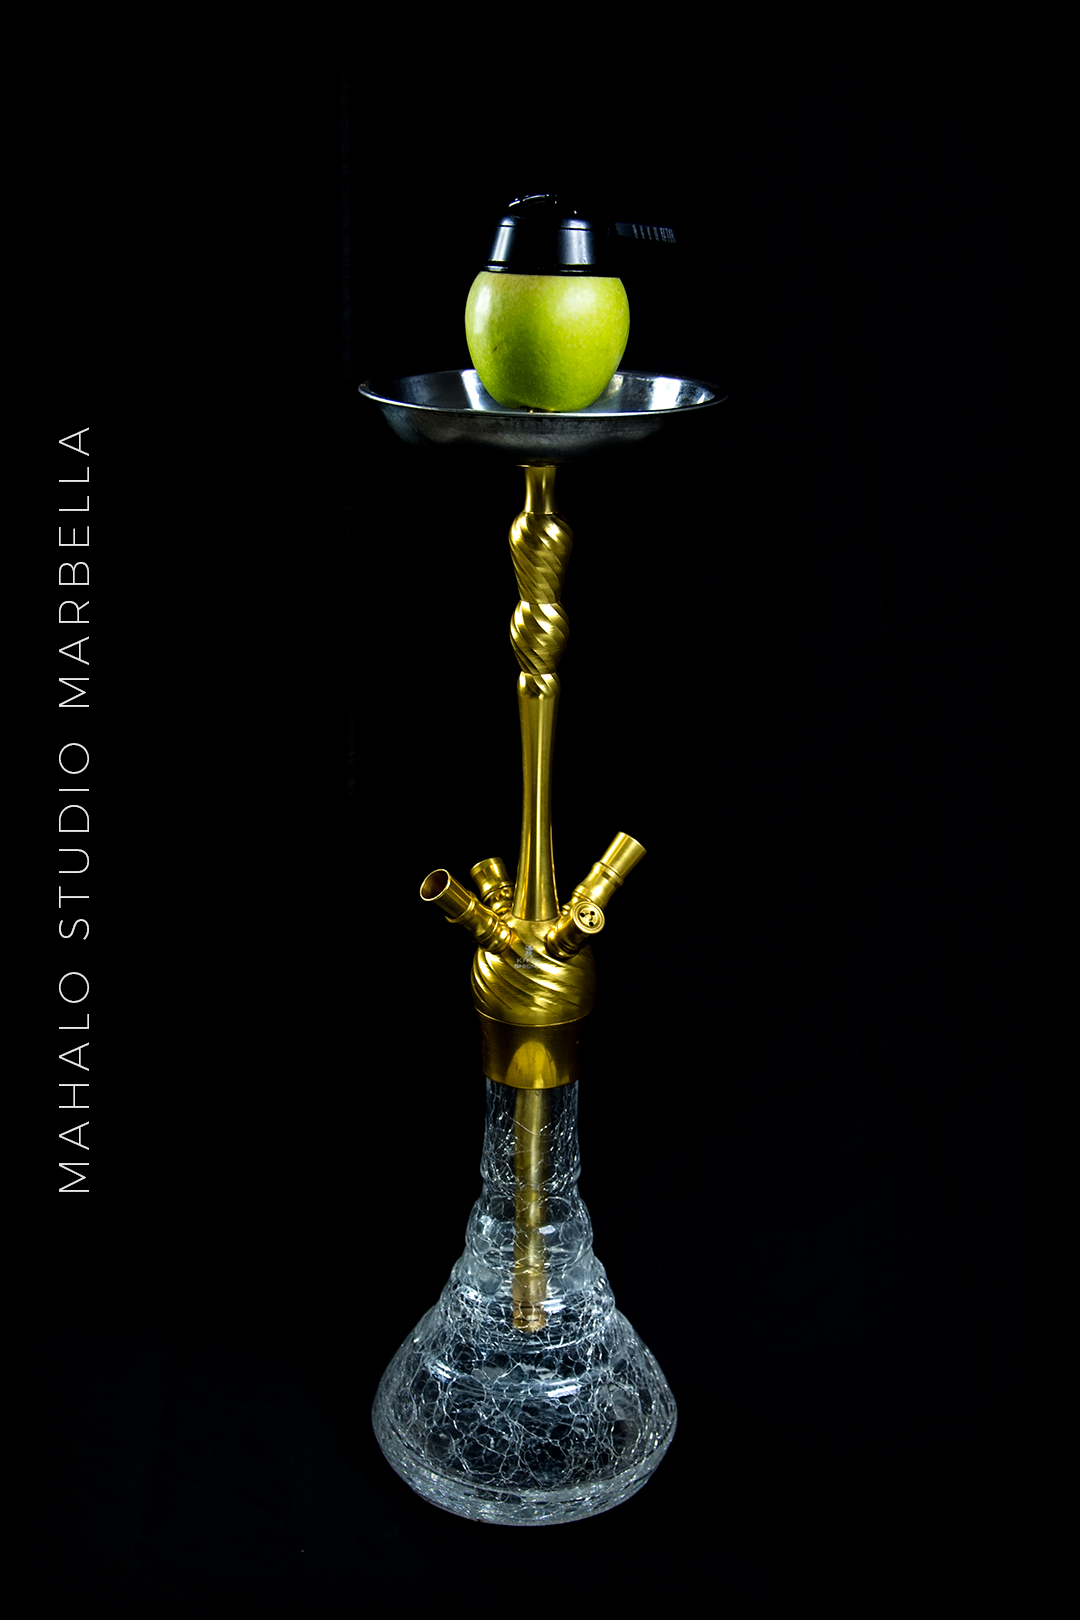 Apple Hookah Dark Black Background